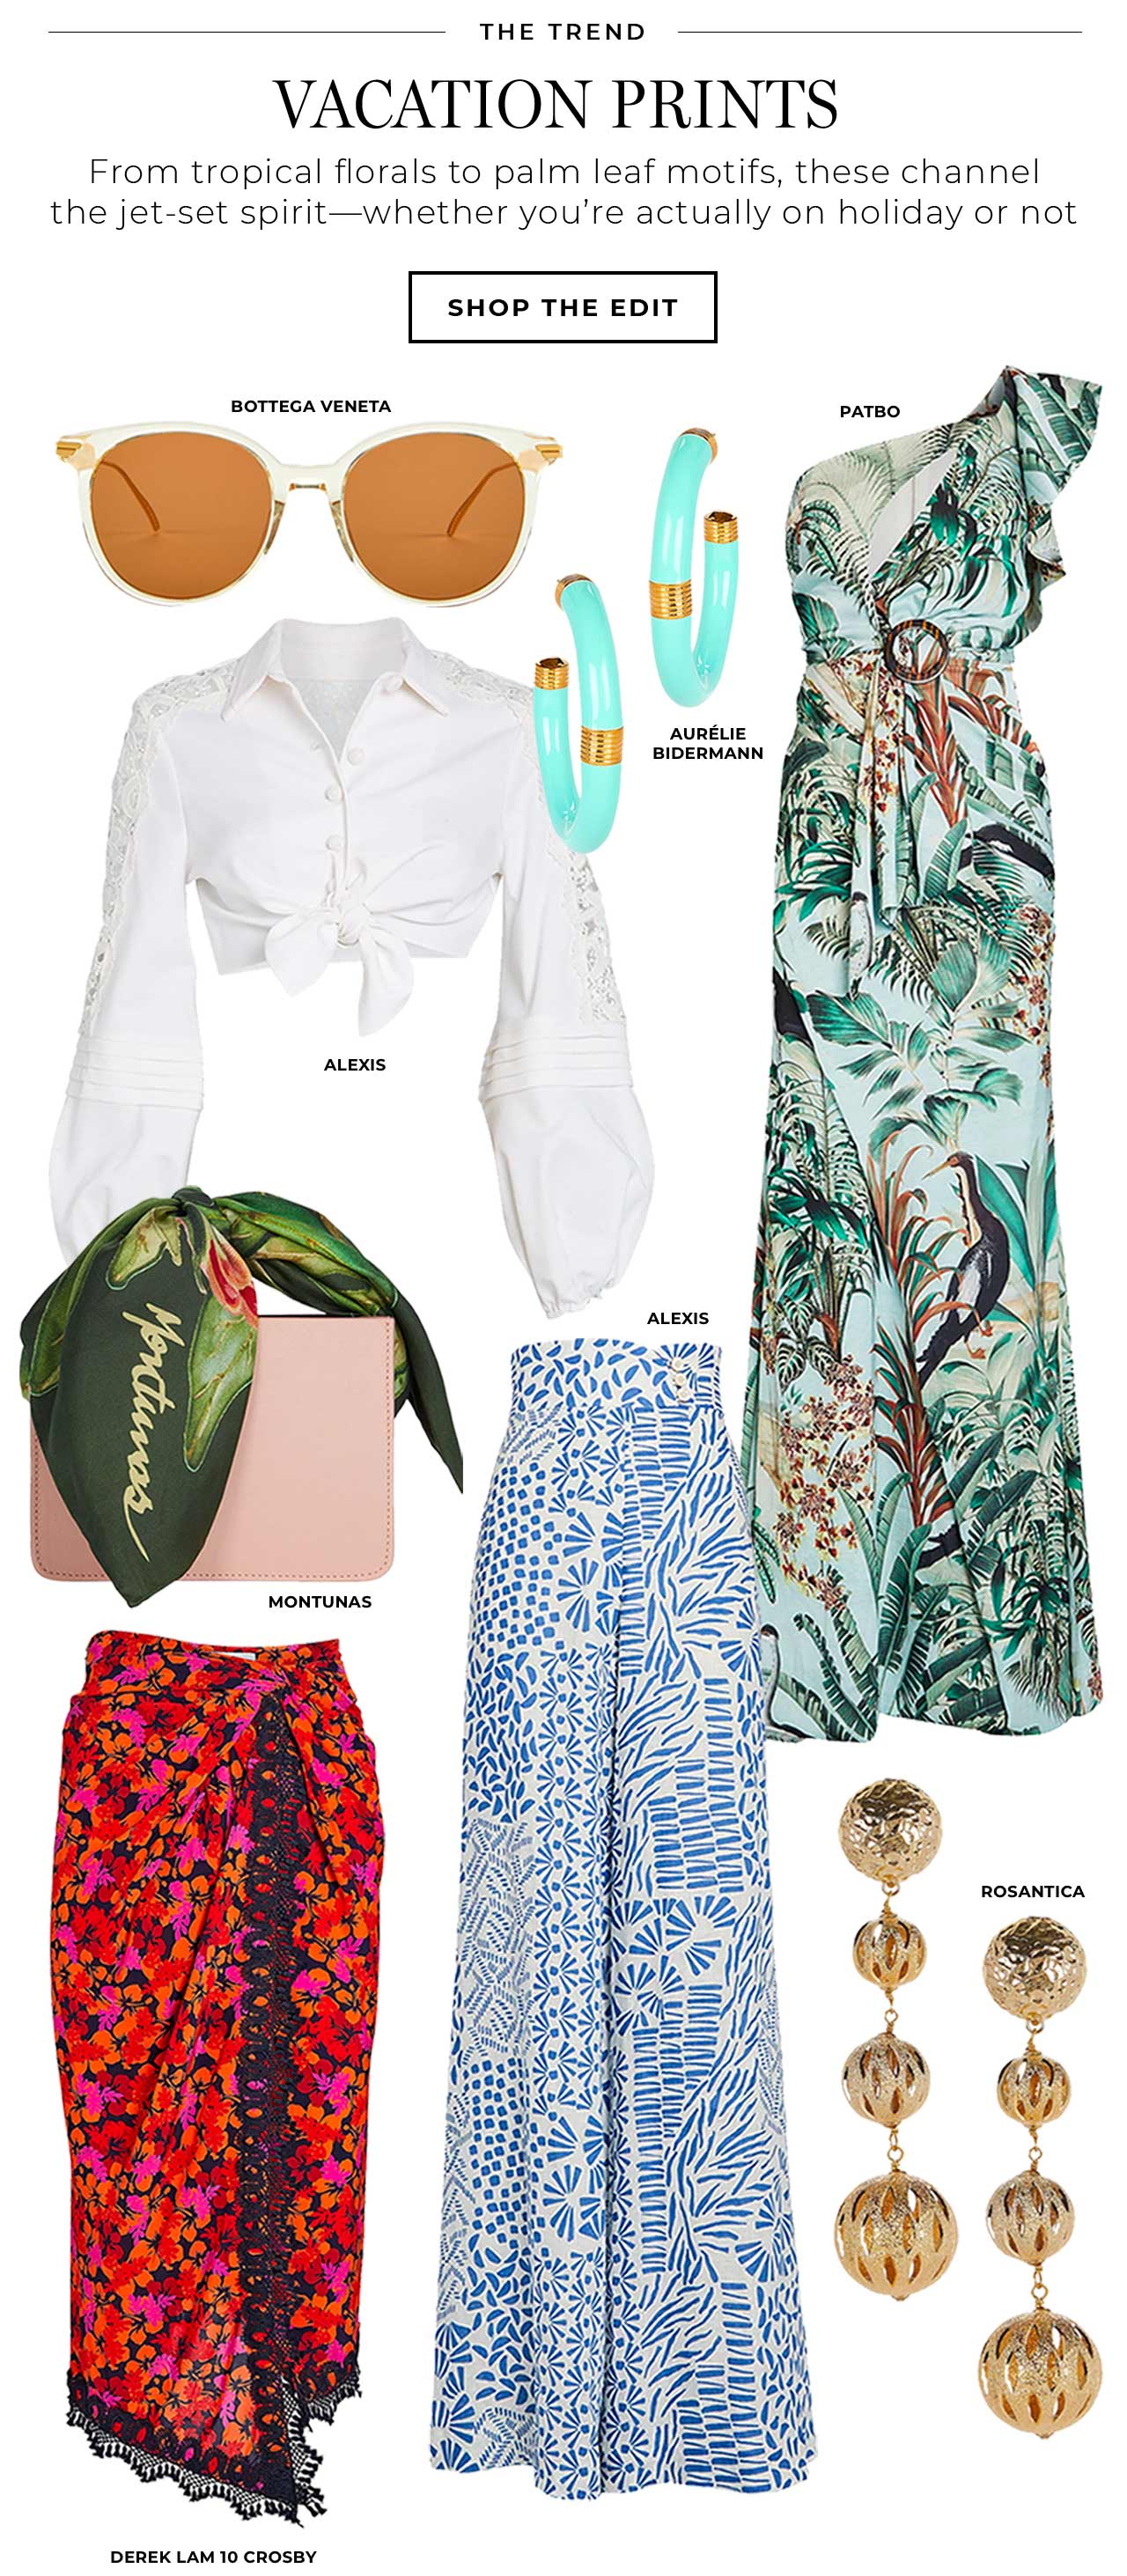 From tropical florals to palm leaf motifs, vacation prints channel the jet-set spirit—whether you're actually on holiday or not